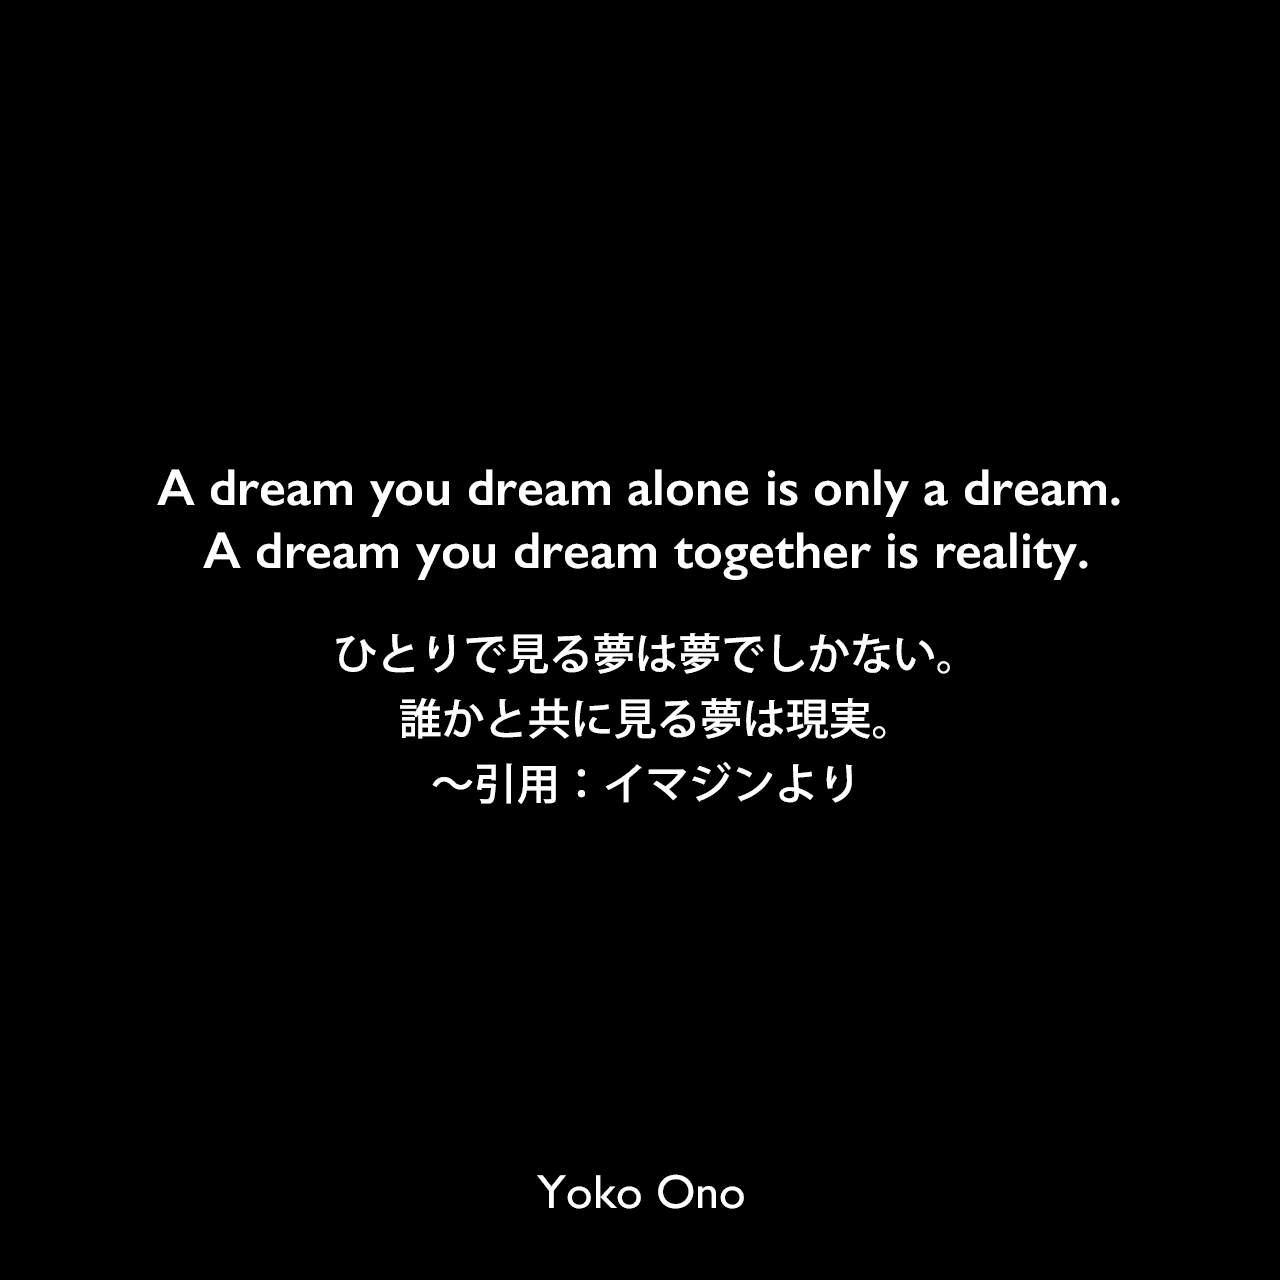 A dream you dream alone is only a dream. A dream you dream together is reality.ひとりで見る夢は夢でしかない。誰かと共に見る夢は現実。〜引用:イマジンよりYoko Ono